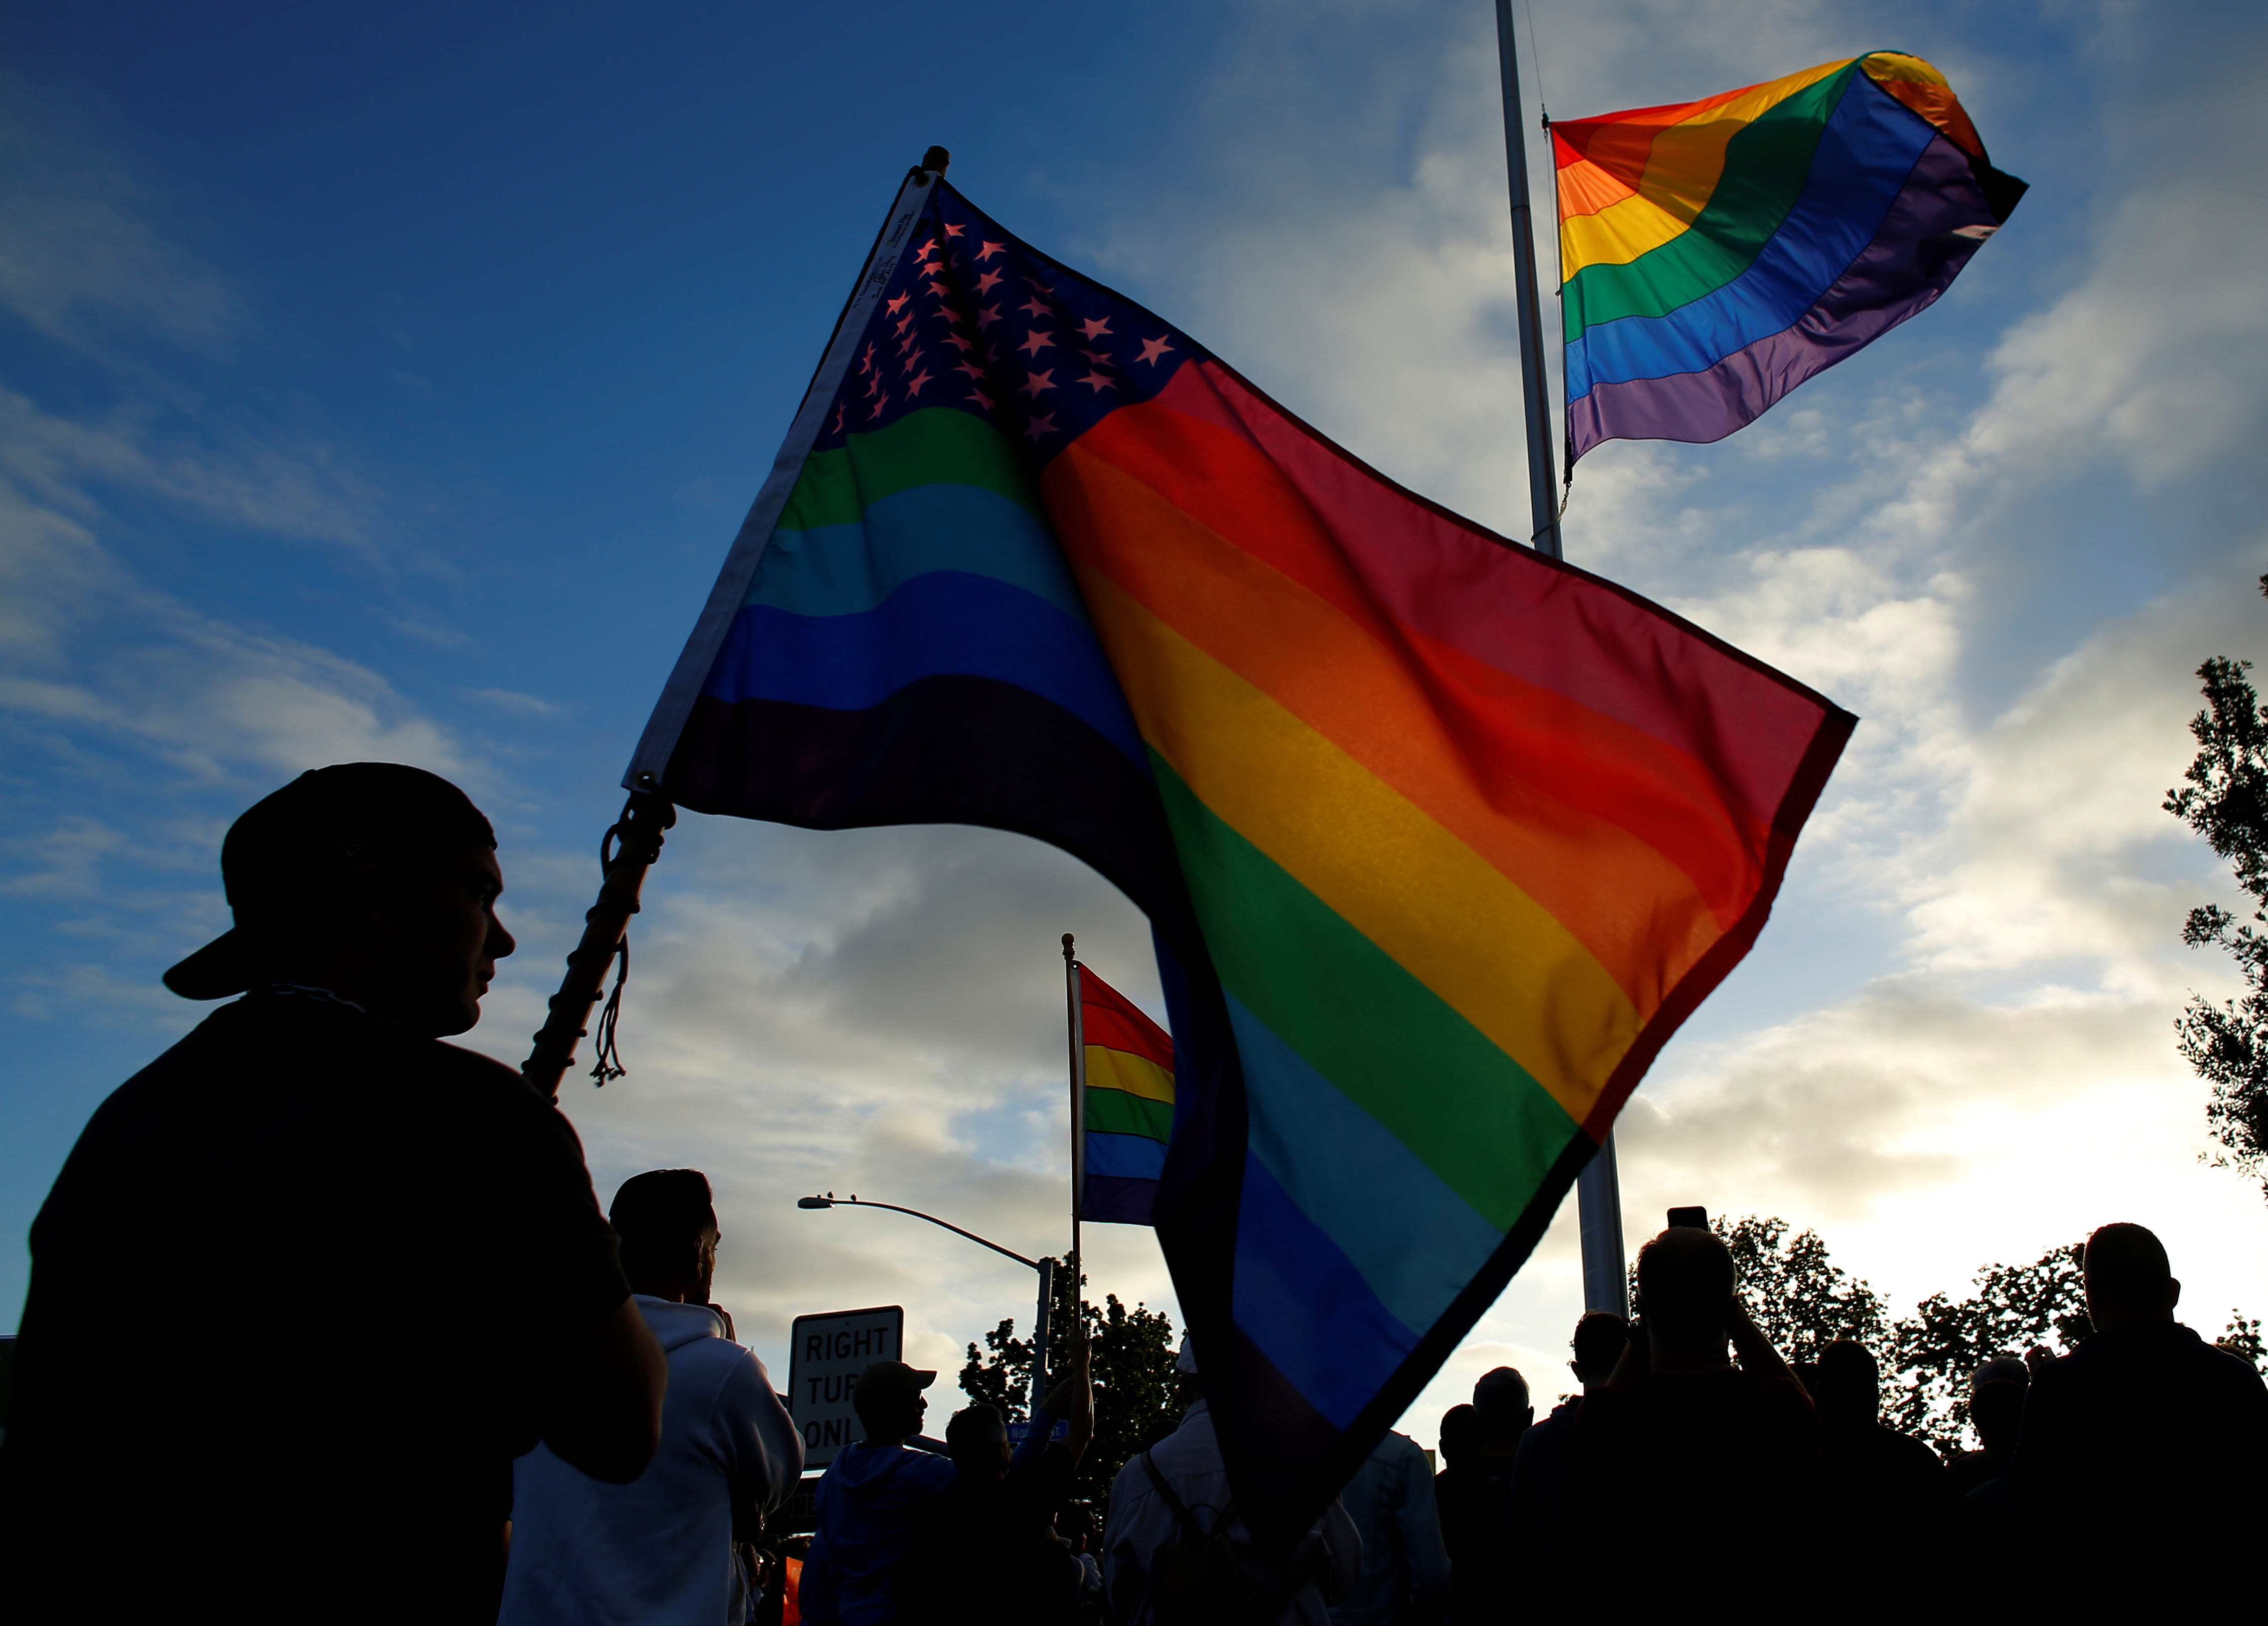 Mourners gather under an LGBT pride flag flying at half-mast for a candlelight vigil in remembrance for mass shooting victims in Orlando, from San Diego, California, U.S. June 12, 2016.